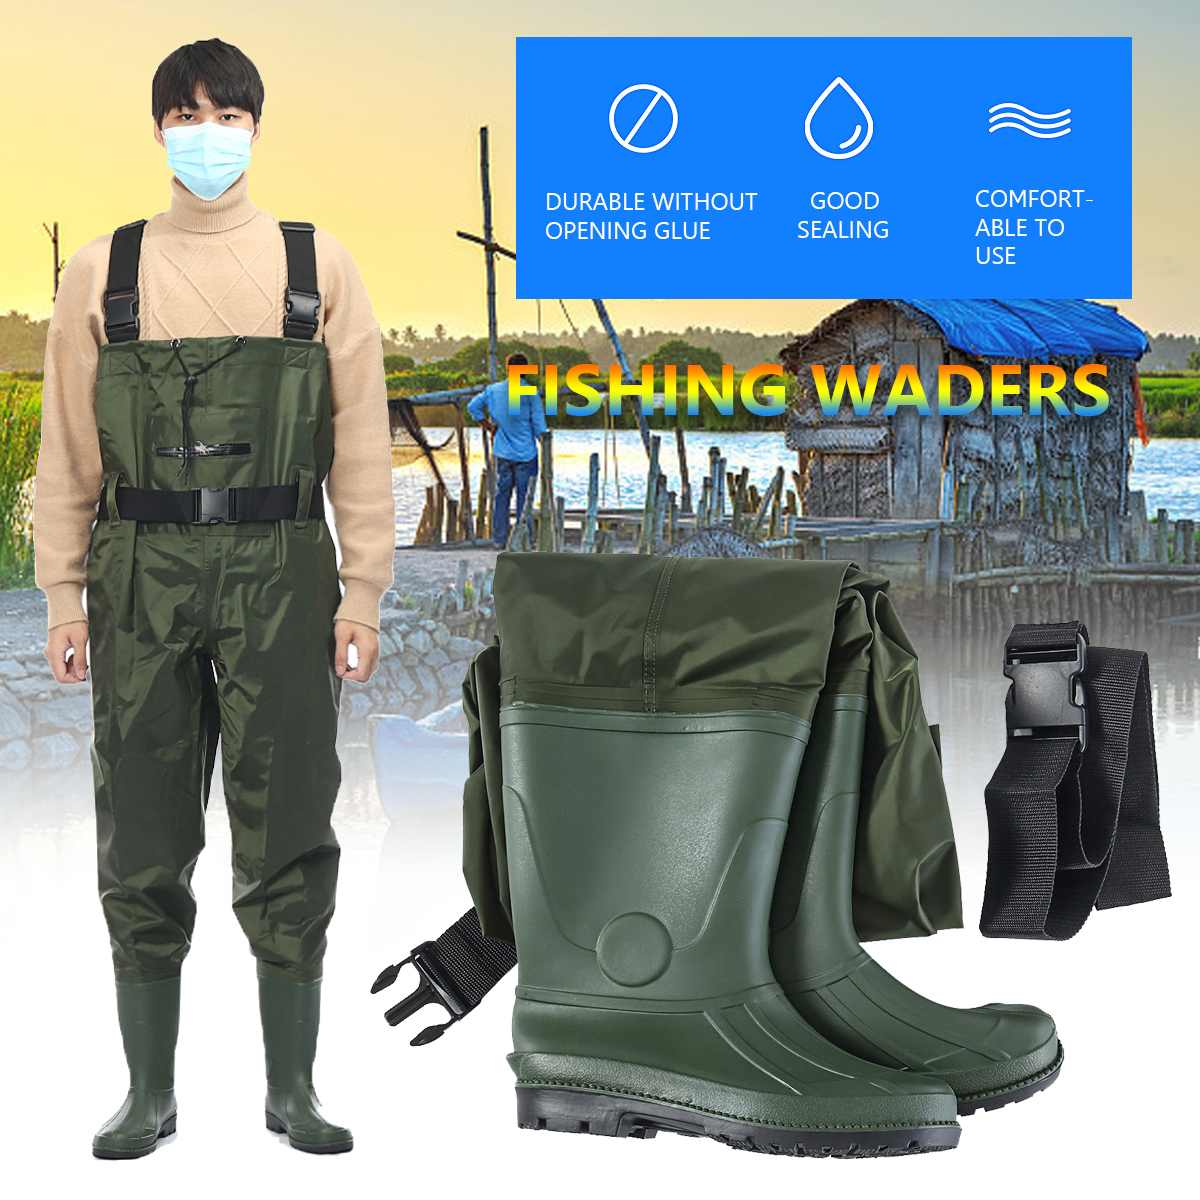 42 43 44 Sizes Outdoor Fishing Waders Wellies PVC Chest Men Boot Foot Breathable Nylon Clothing Pants Fishing Apparels For Men